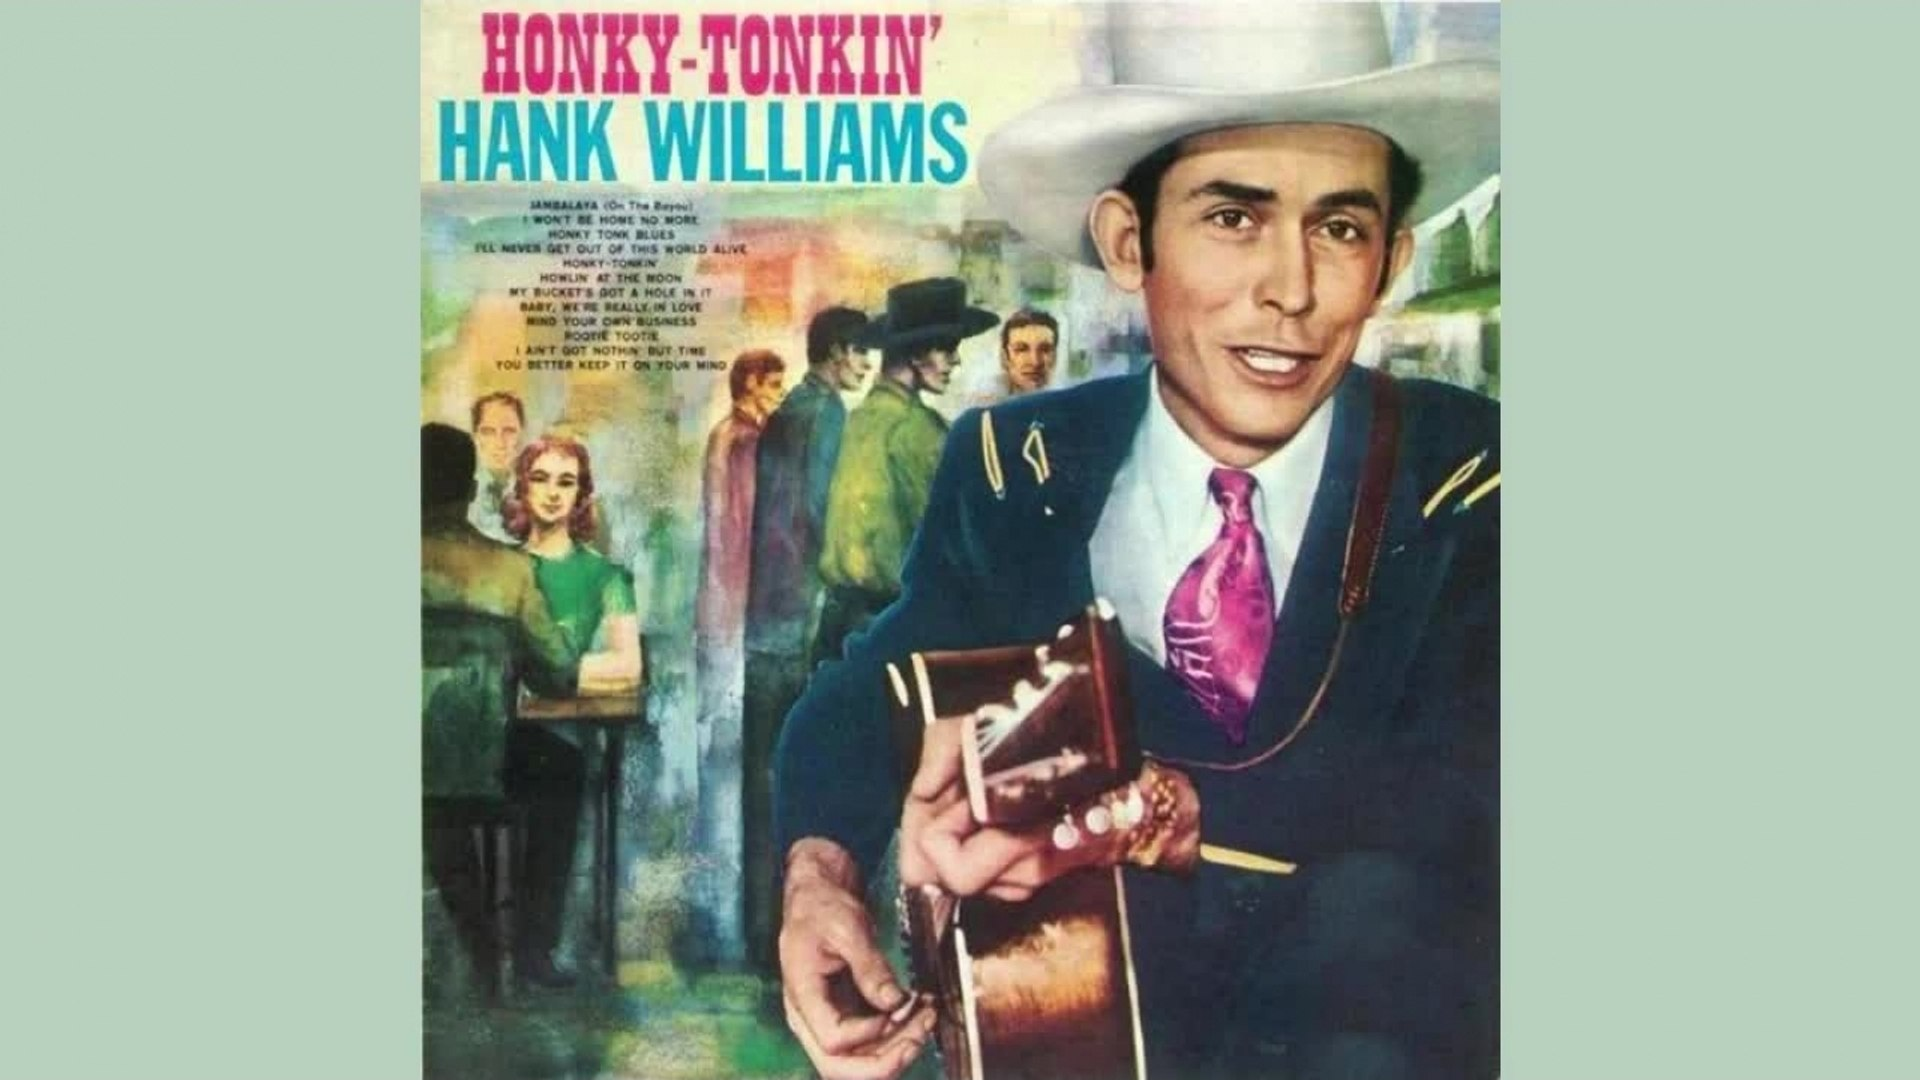 Hank Williams - Baby, We're Really In Love